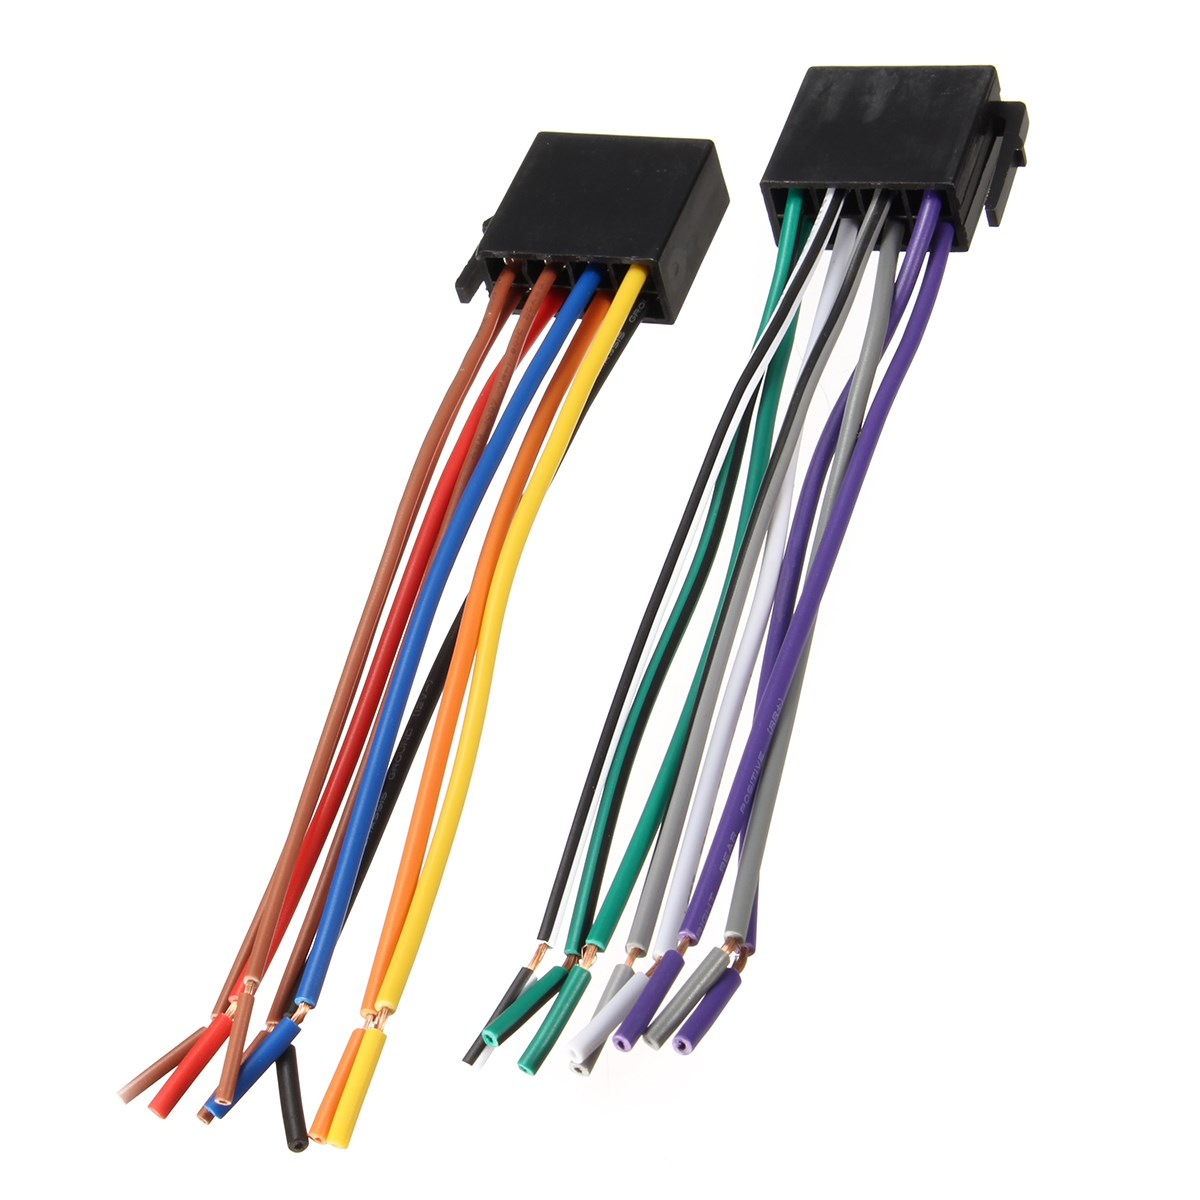 Universal Wire Harness Adapter Connector Cable Radio Wiring Connector Plug for Auto Car Stereo System universal wire harness adapter connector cable radio wiring universal wiring harness connector at gsmportal.co